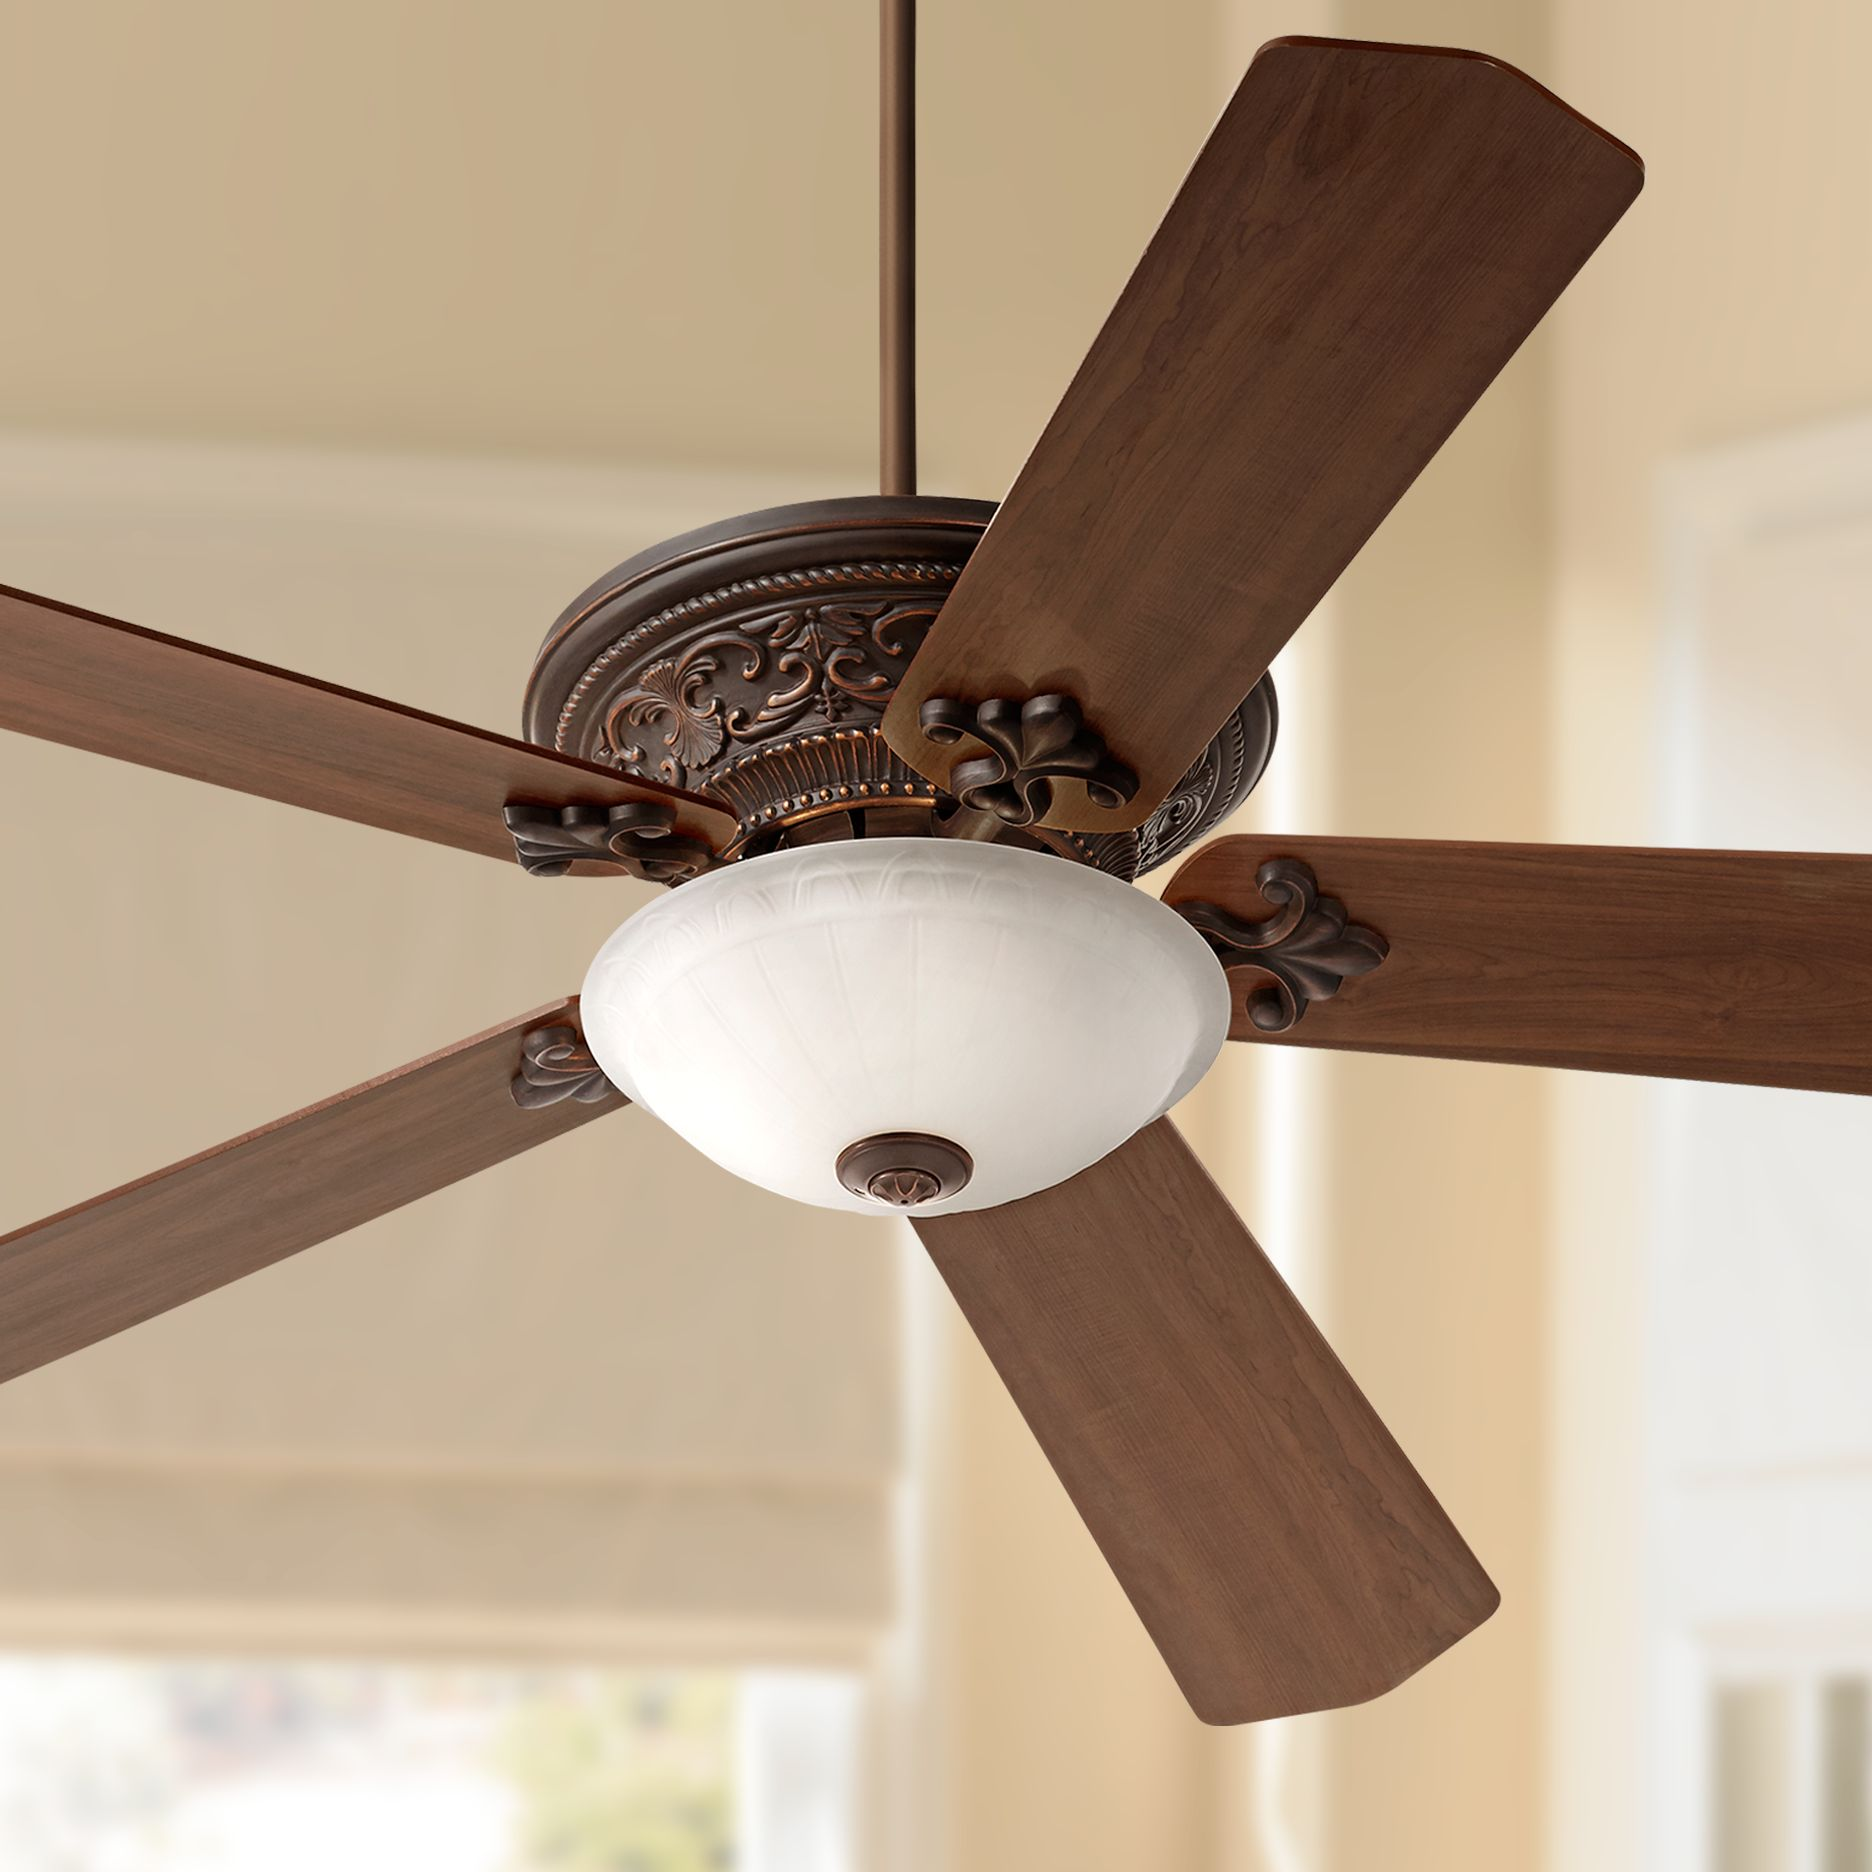 ceiling fans with lights 70 MVLFWBQ